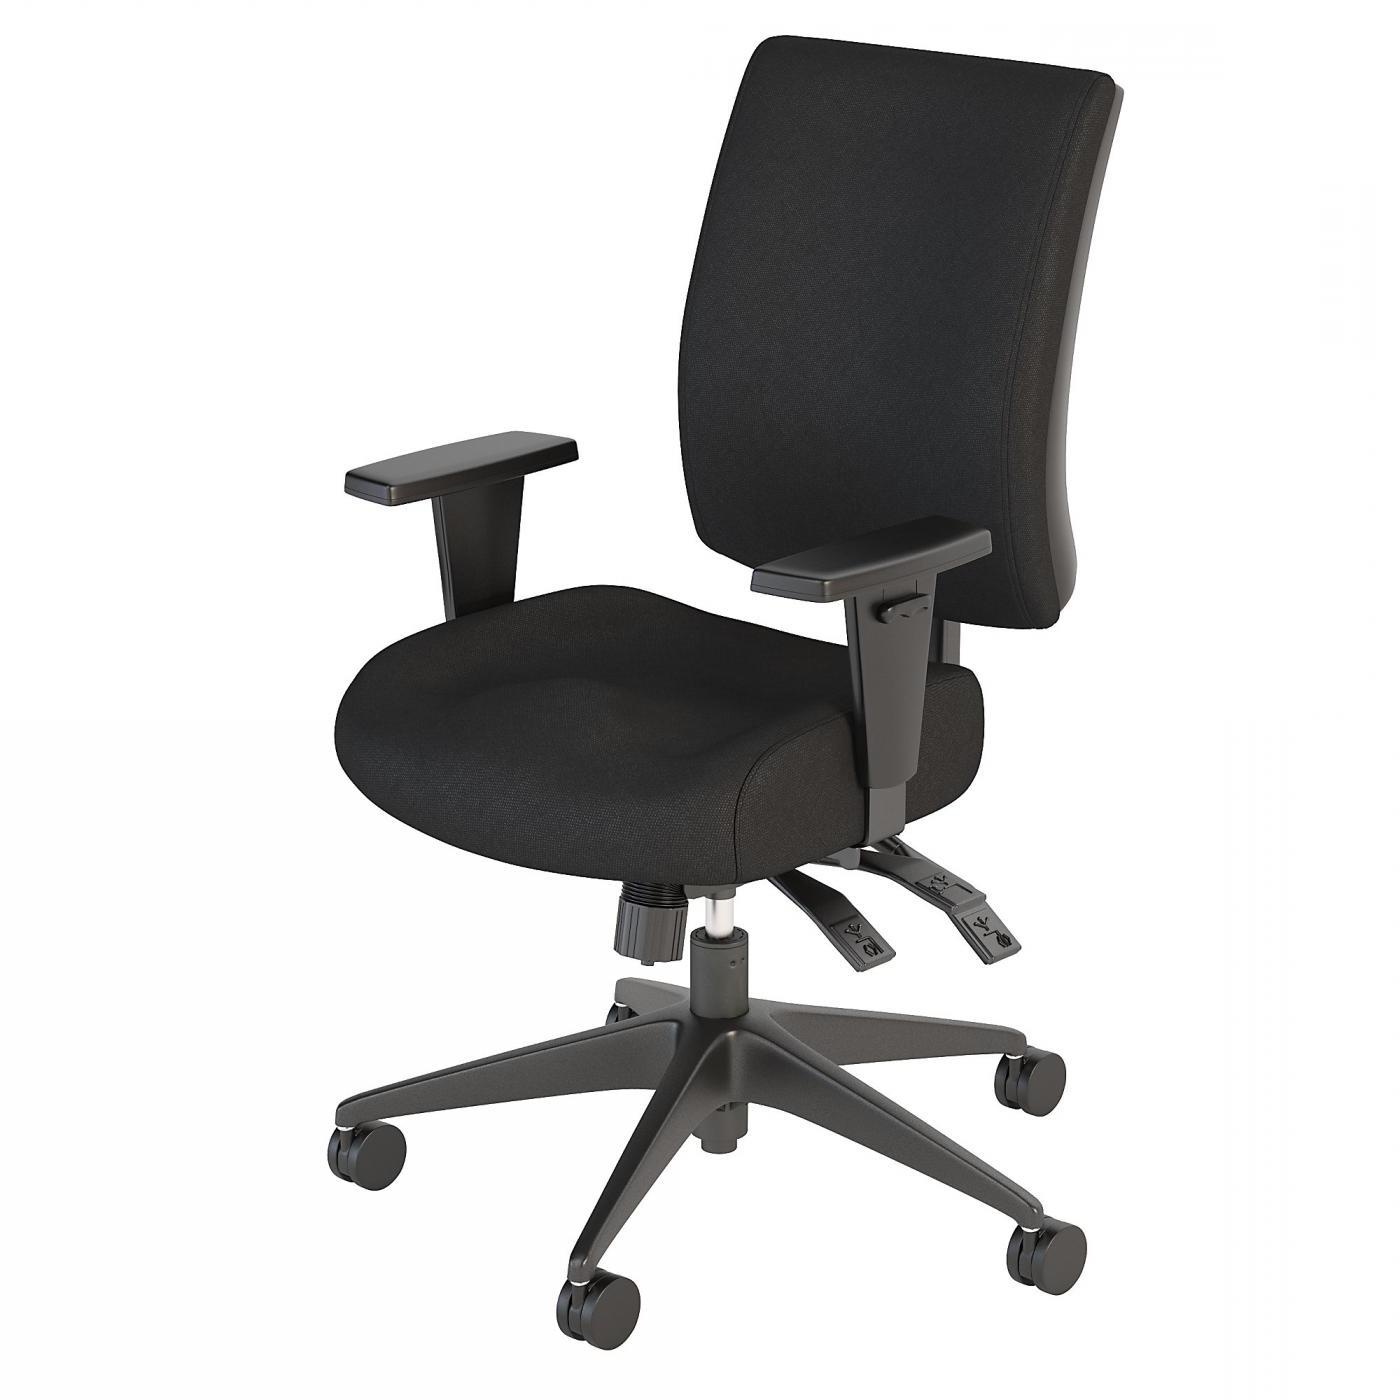 <font color=#c60><b>BUSH BUSINESS FURNITURE ACCORD MID BACK DELUXE MULTIFUNCTION OFFICE CHAIR. FREE SHIPPING</font></b> </font></b></font></b>